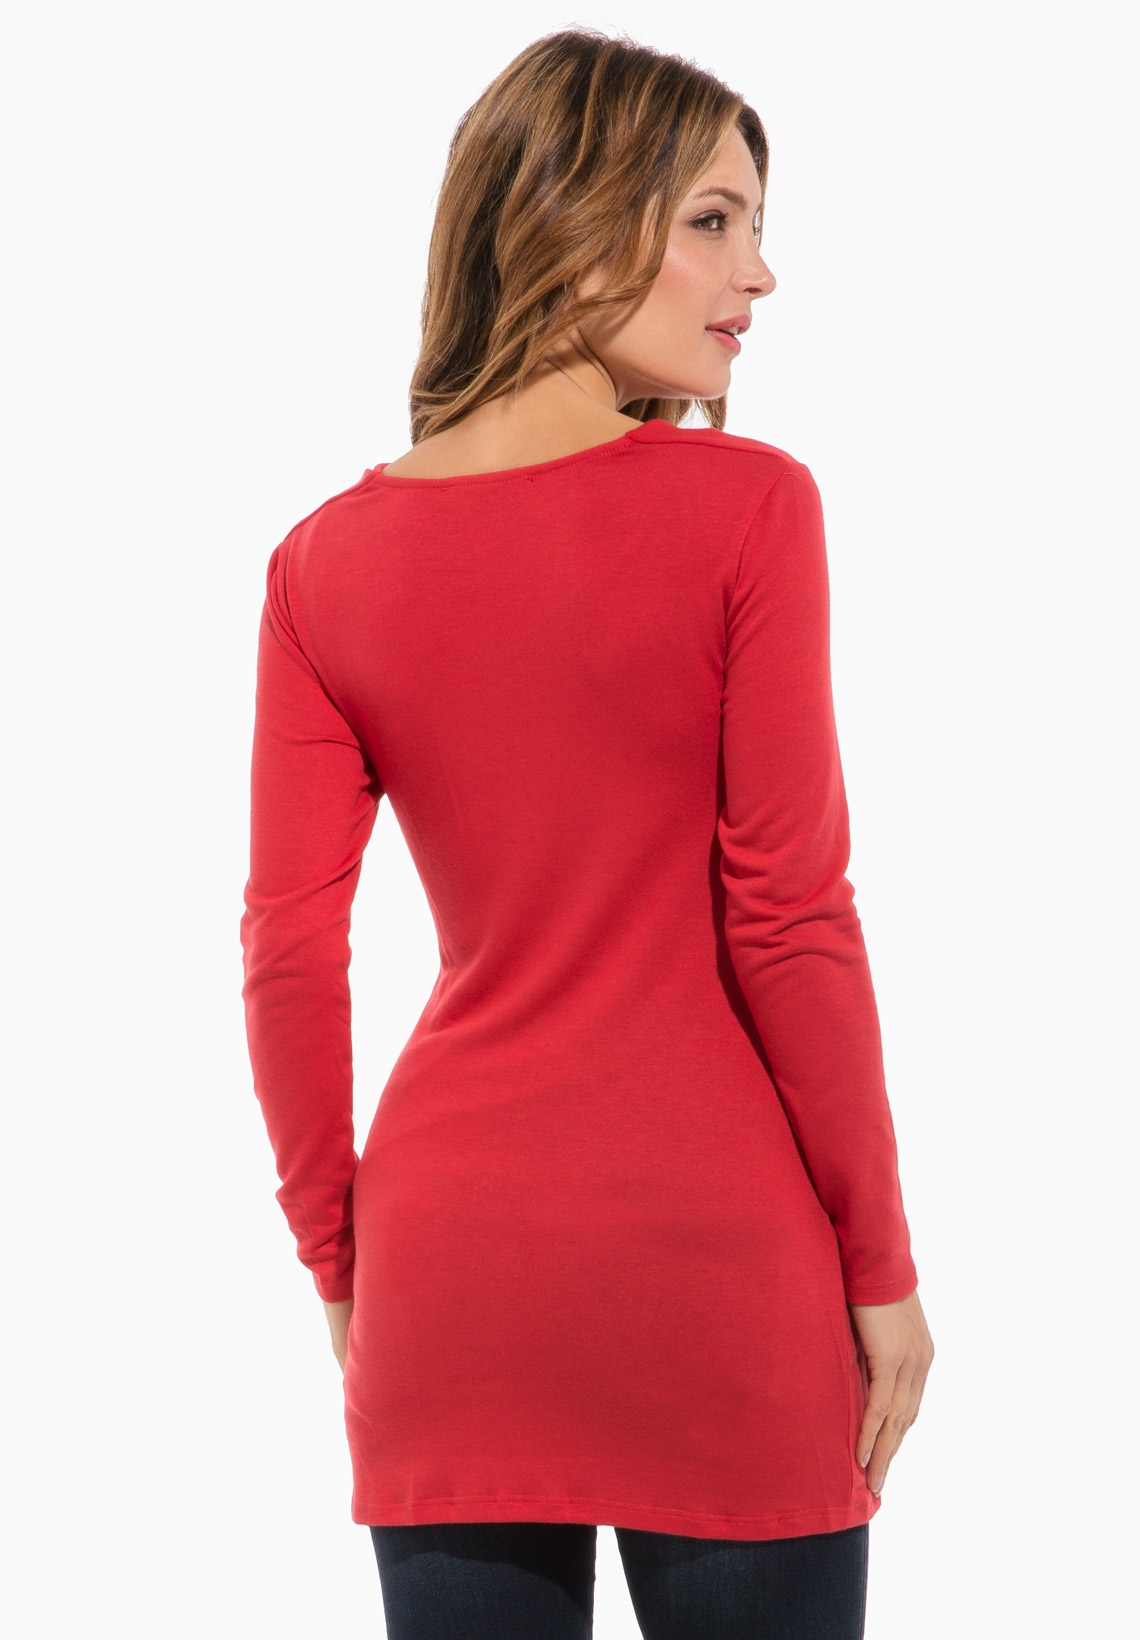 Maternity tunics both show off your growing baby bump and keep you covered. Maternity tunic styles Maternity tunics are available in fitted tops that hug your baby .